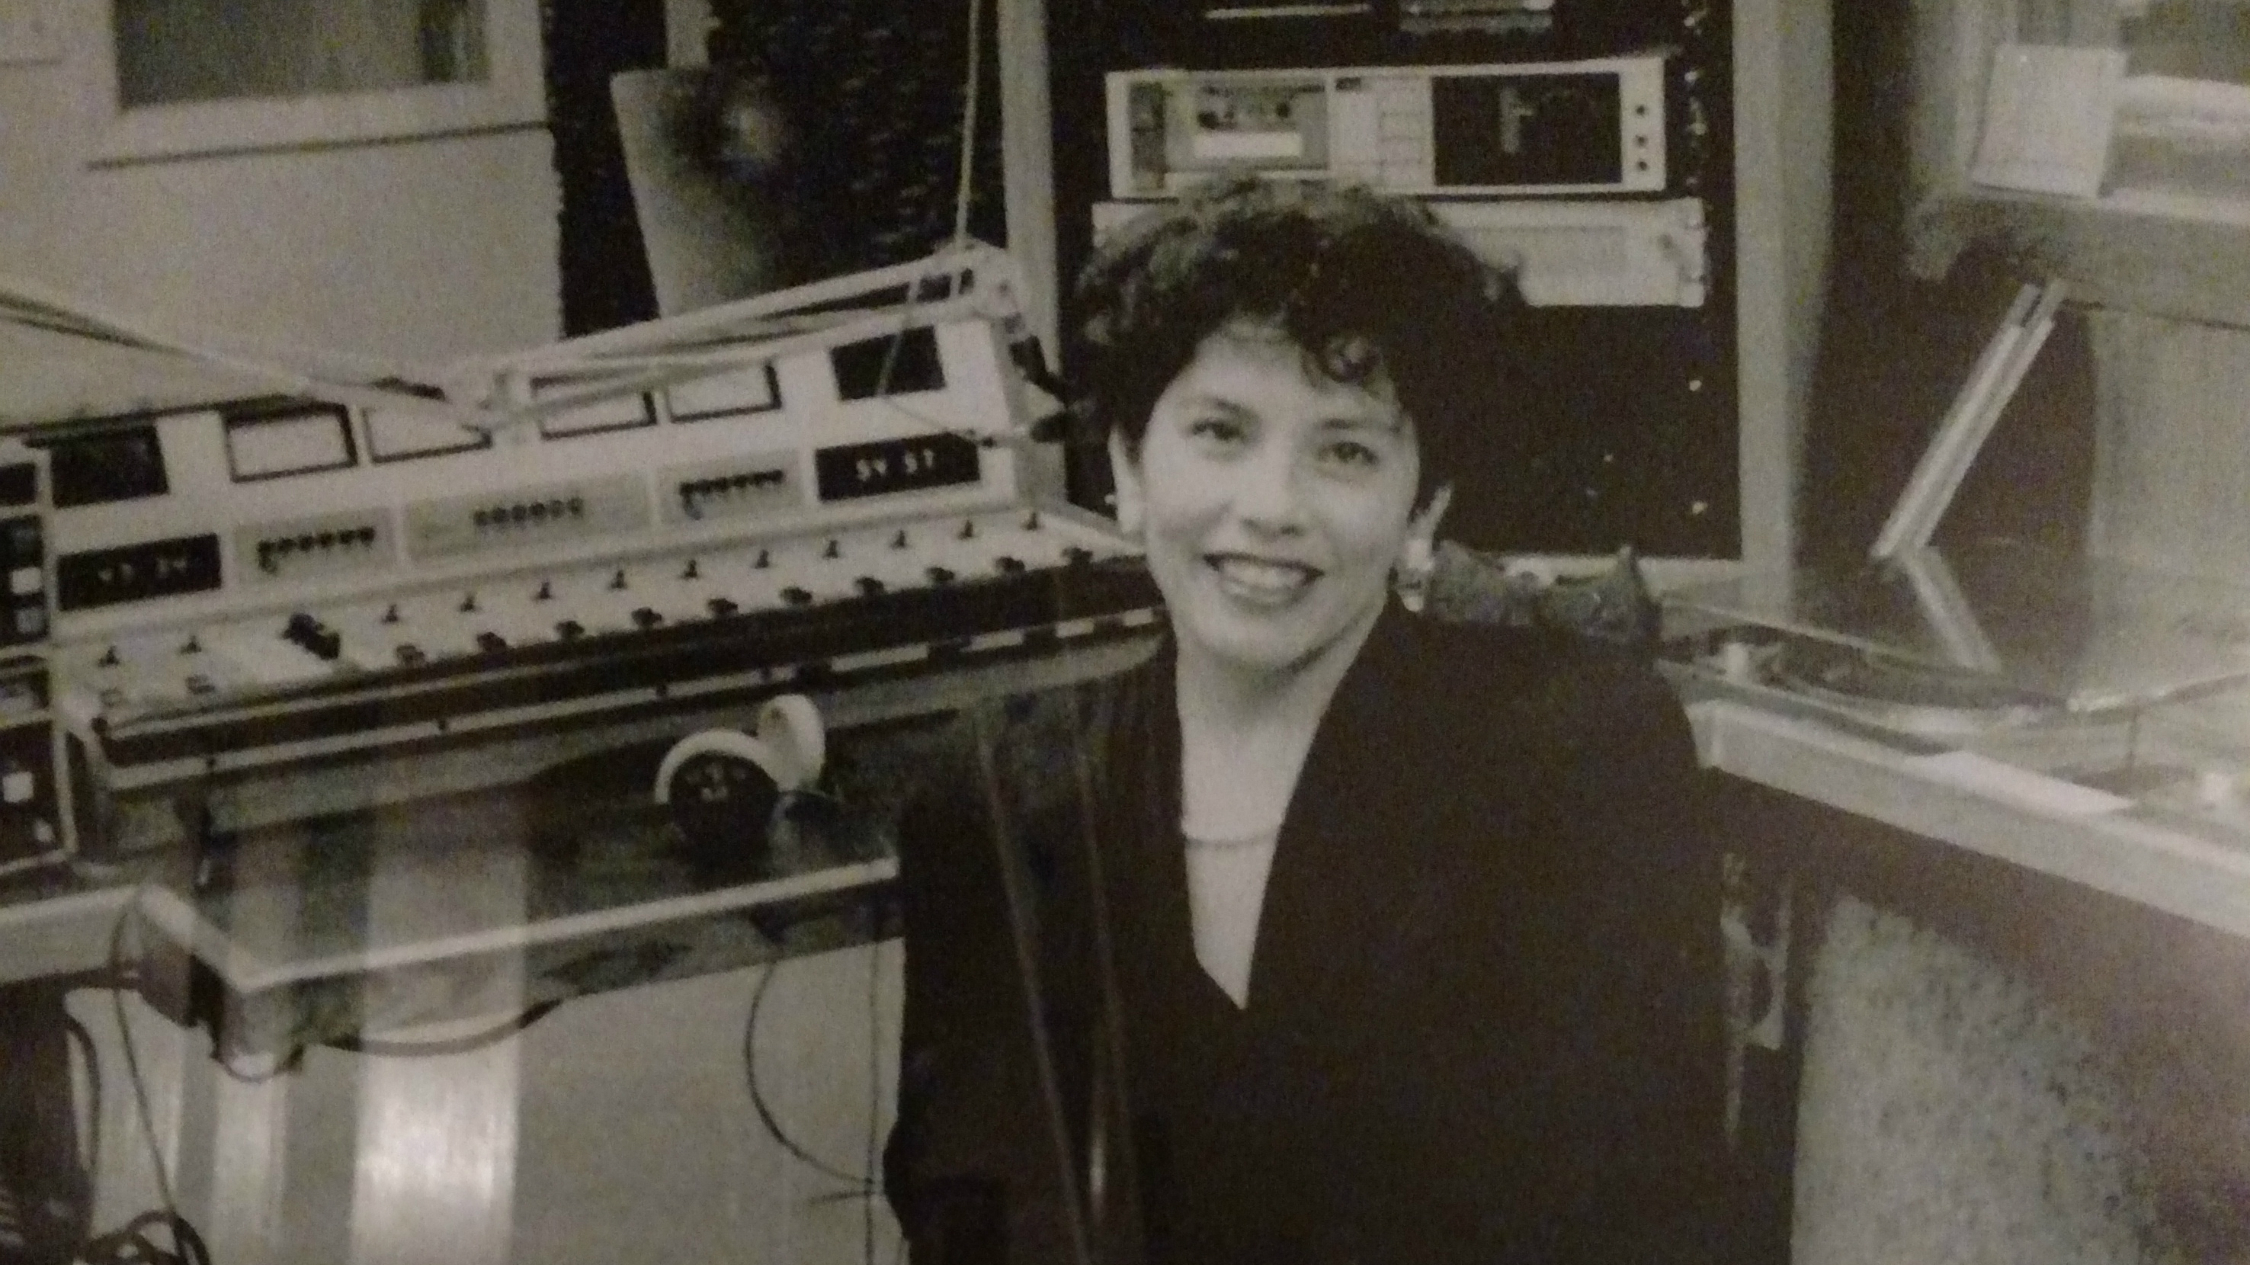 Photo: KUVO founder Florence Hernandez Ramos in a 1980s radio studio CROPPED